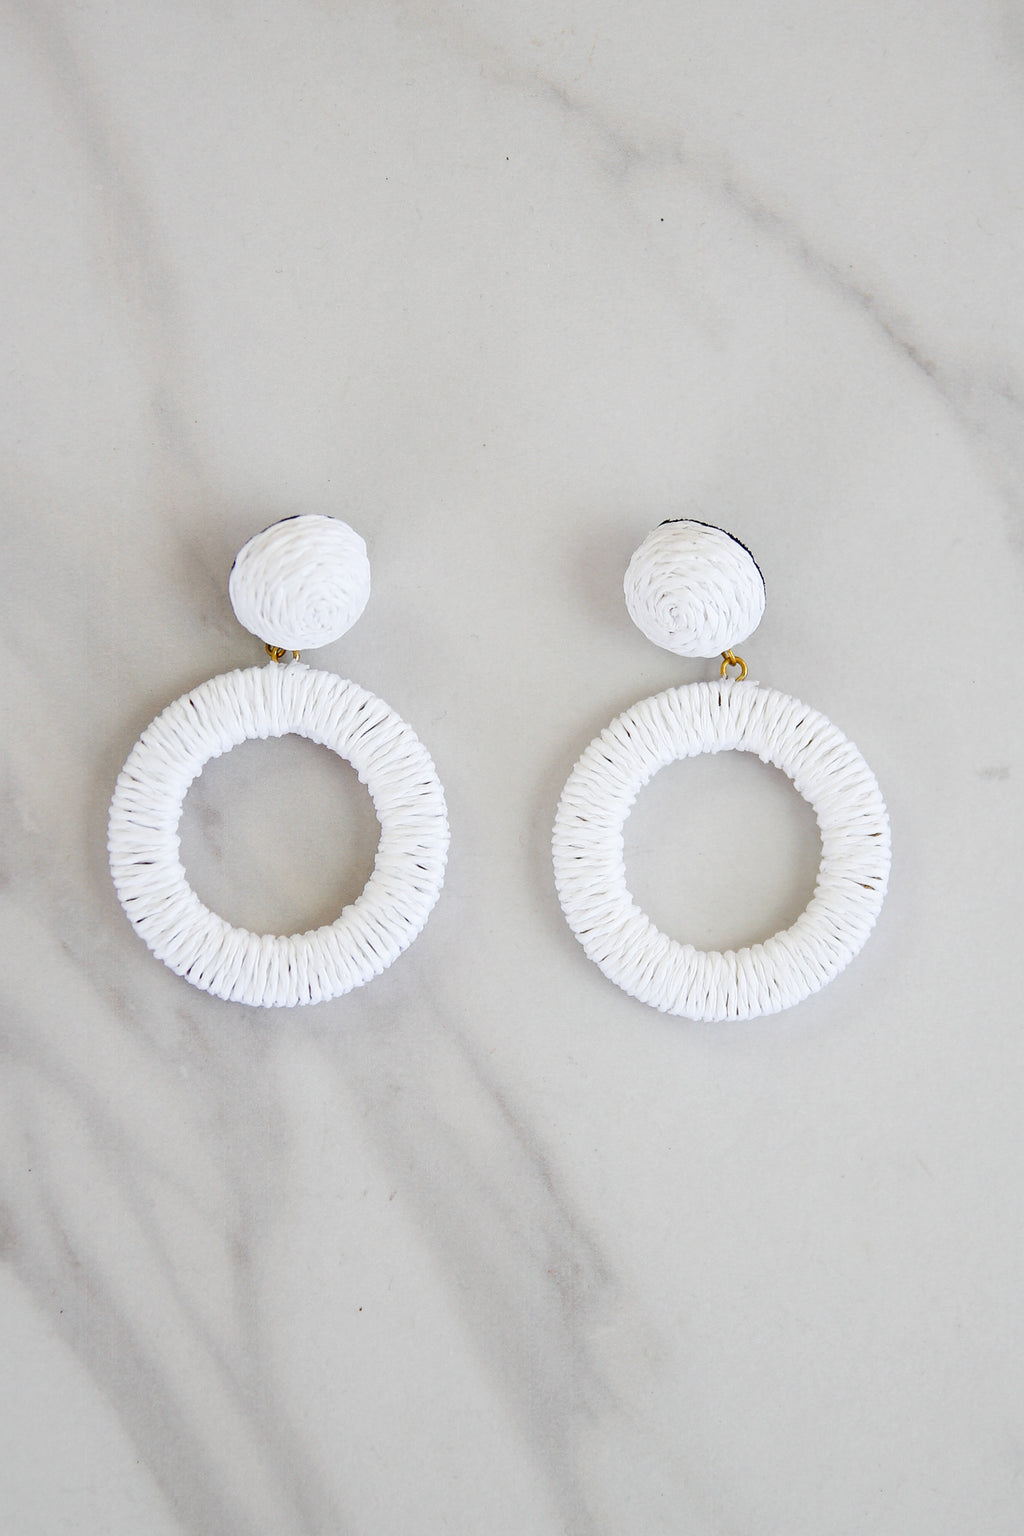 Positano Perfect Earrings - White